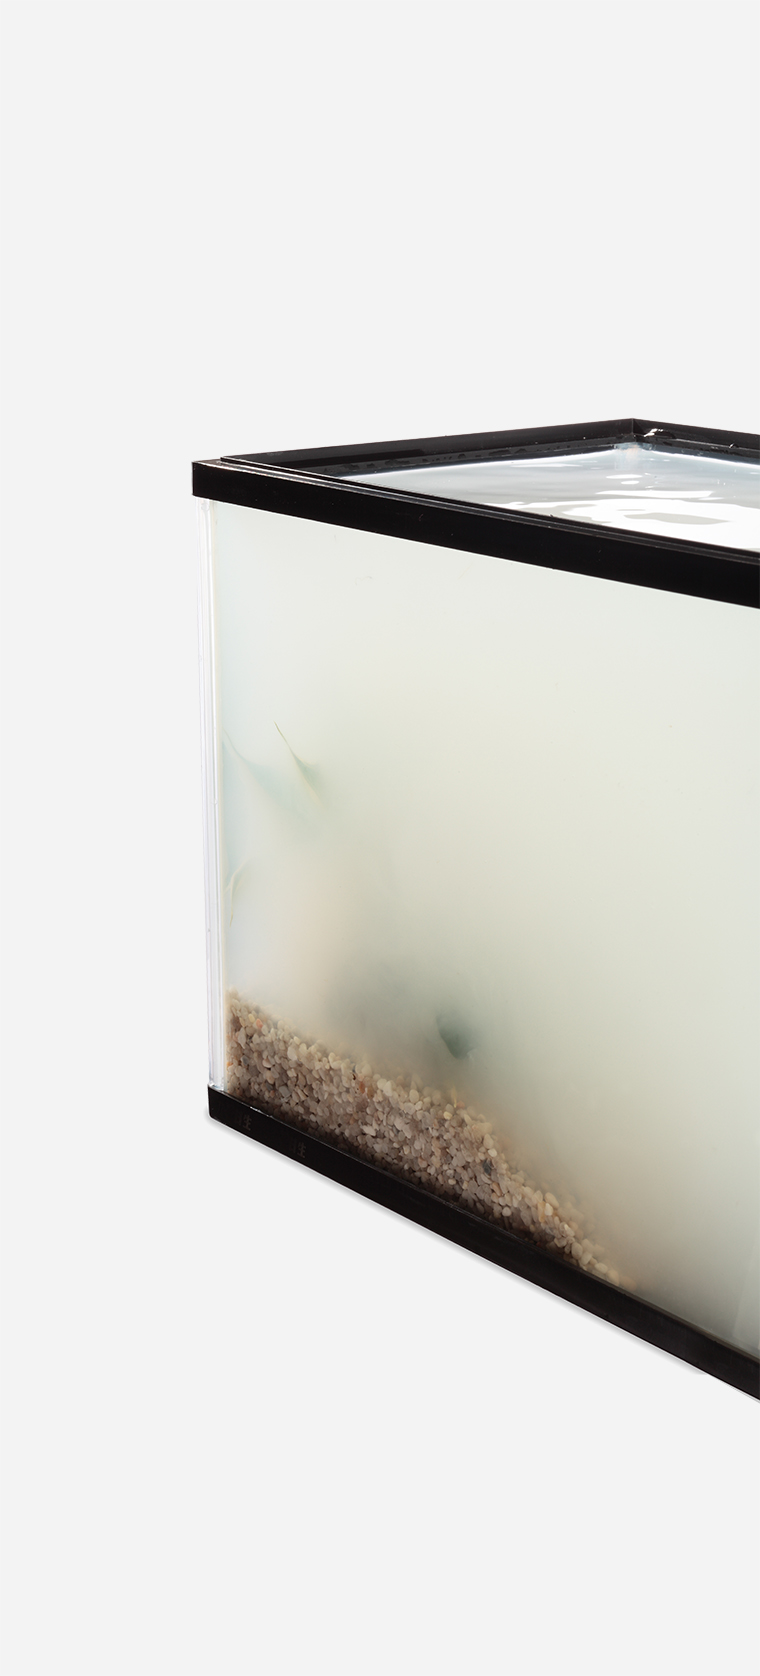 The corner of a glass aquarium filled with cloudy water, obscuring its contents